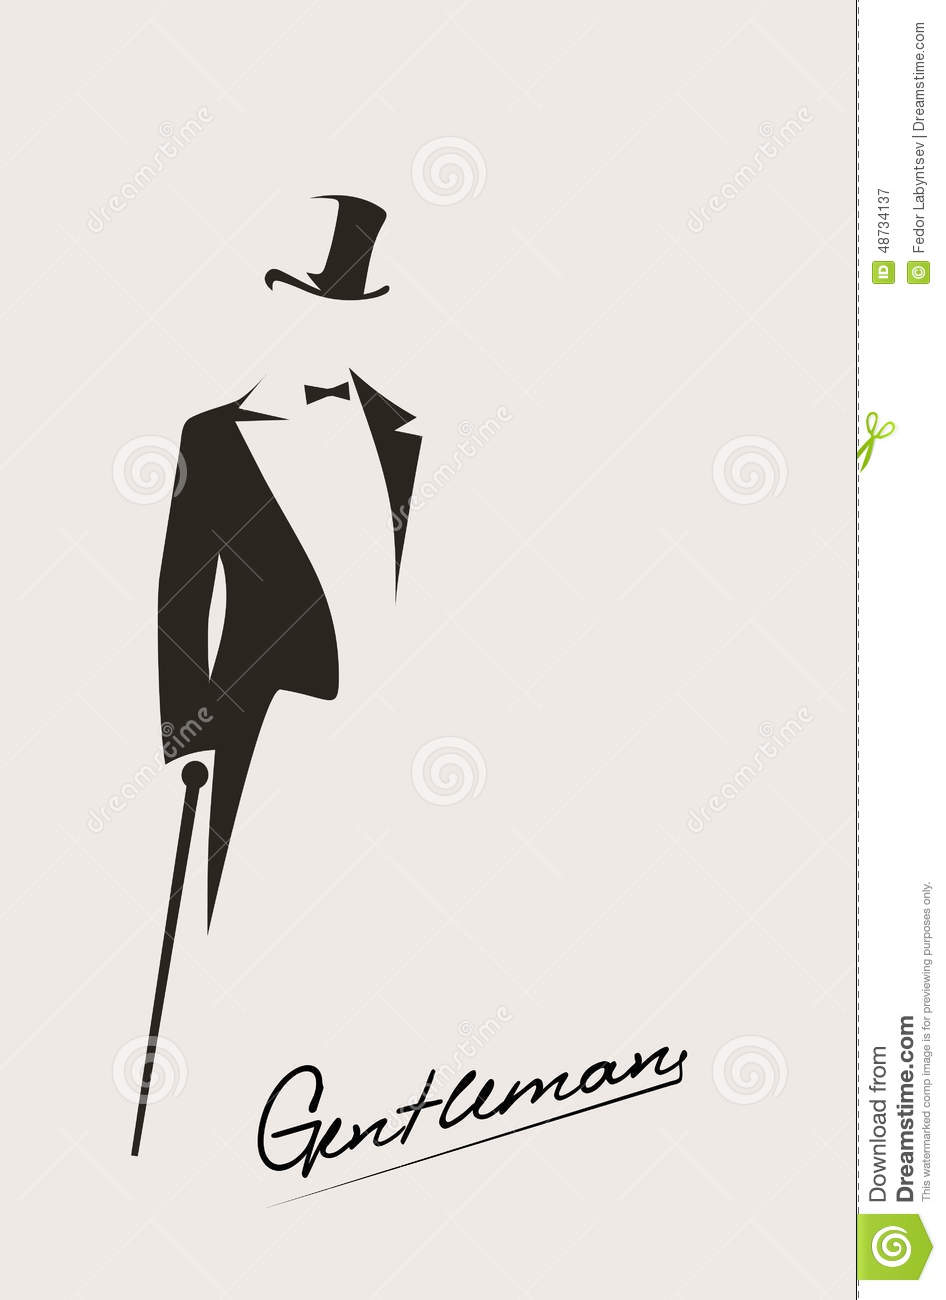 Silhouette Of A Gentleman In A Tuxedo Stock Vector - Image: 48734137